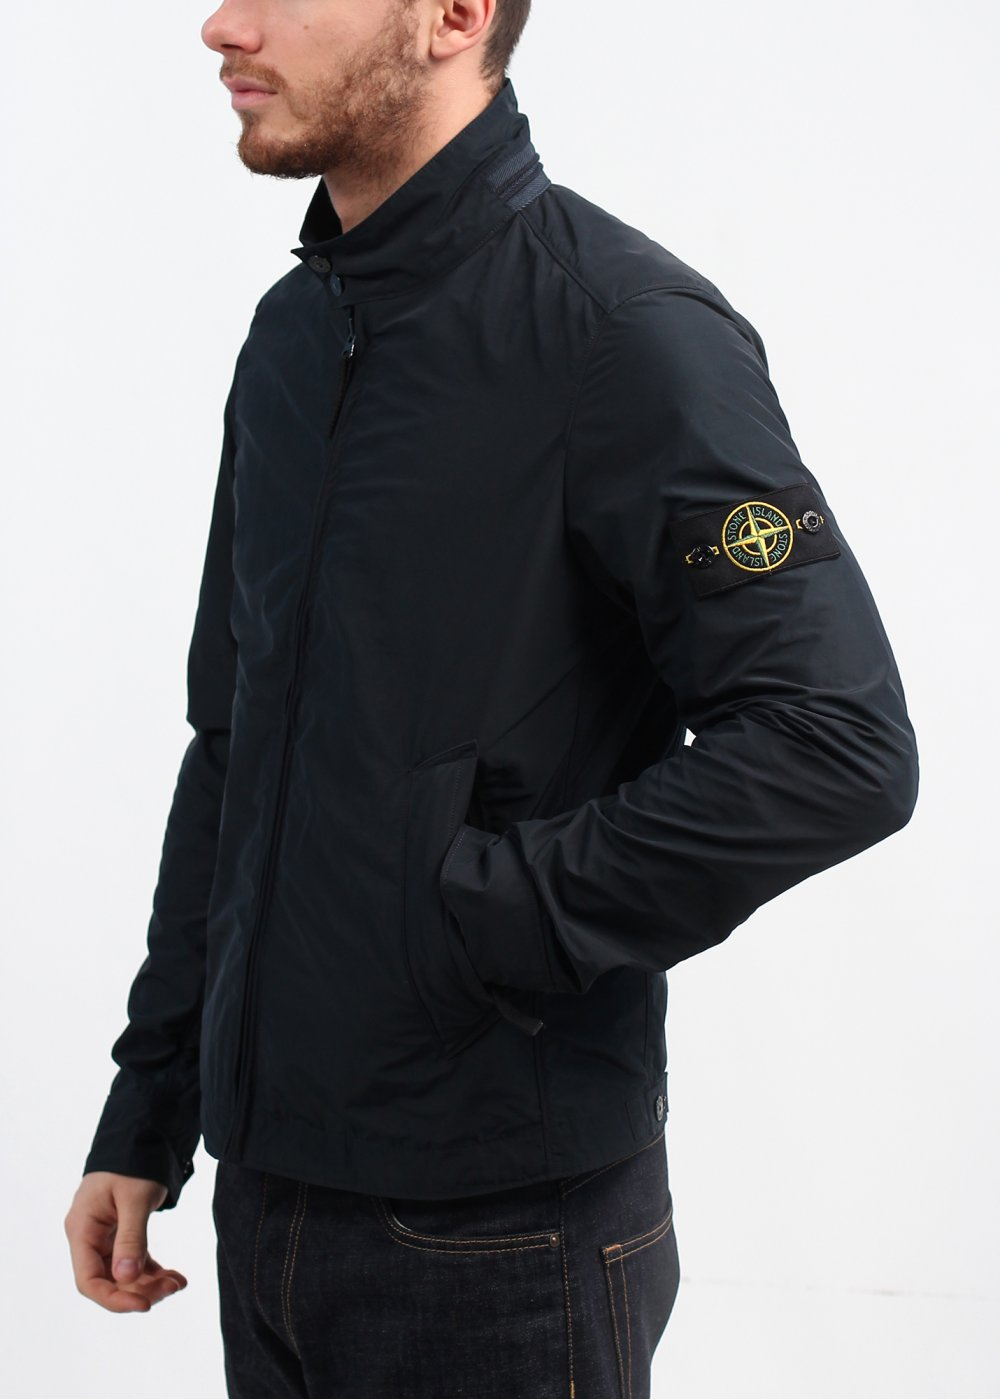 stone island zip jacket navy. Black Bedroom Furniture Sets. Home Design Ideas